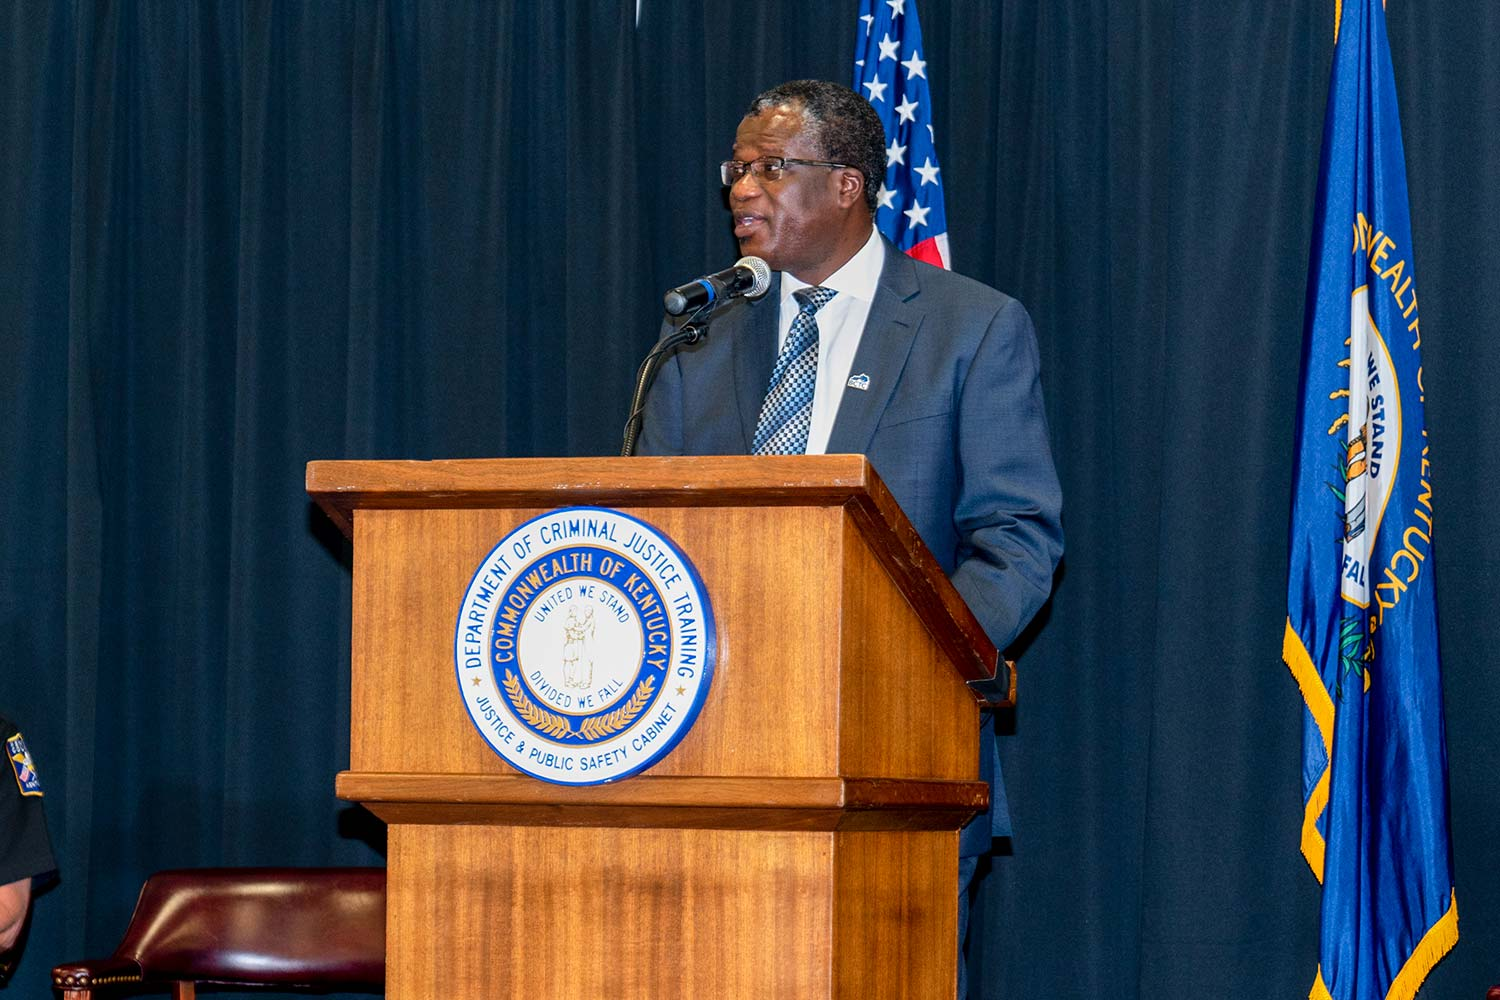 Bluegrass Community and Technical College President Dr. Koffi Akakpo speaks to attendees. (Photo by Jim Robertson)